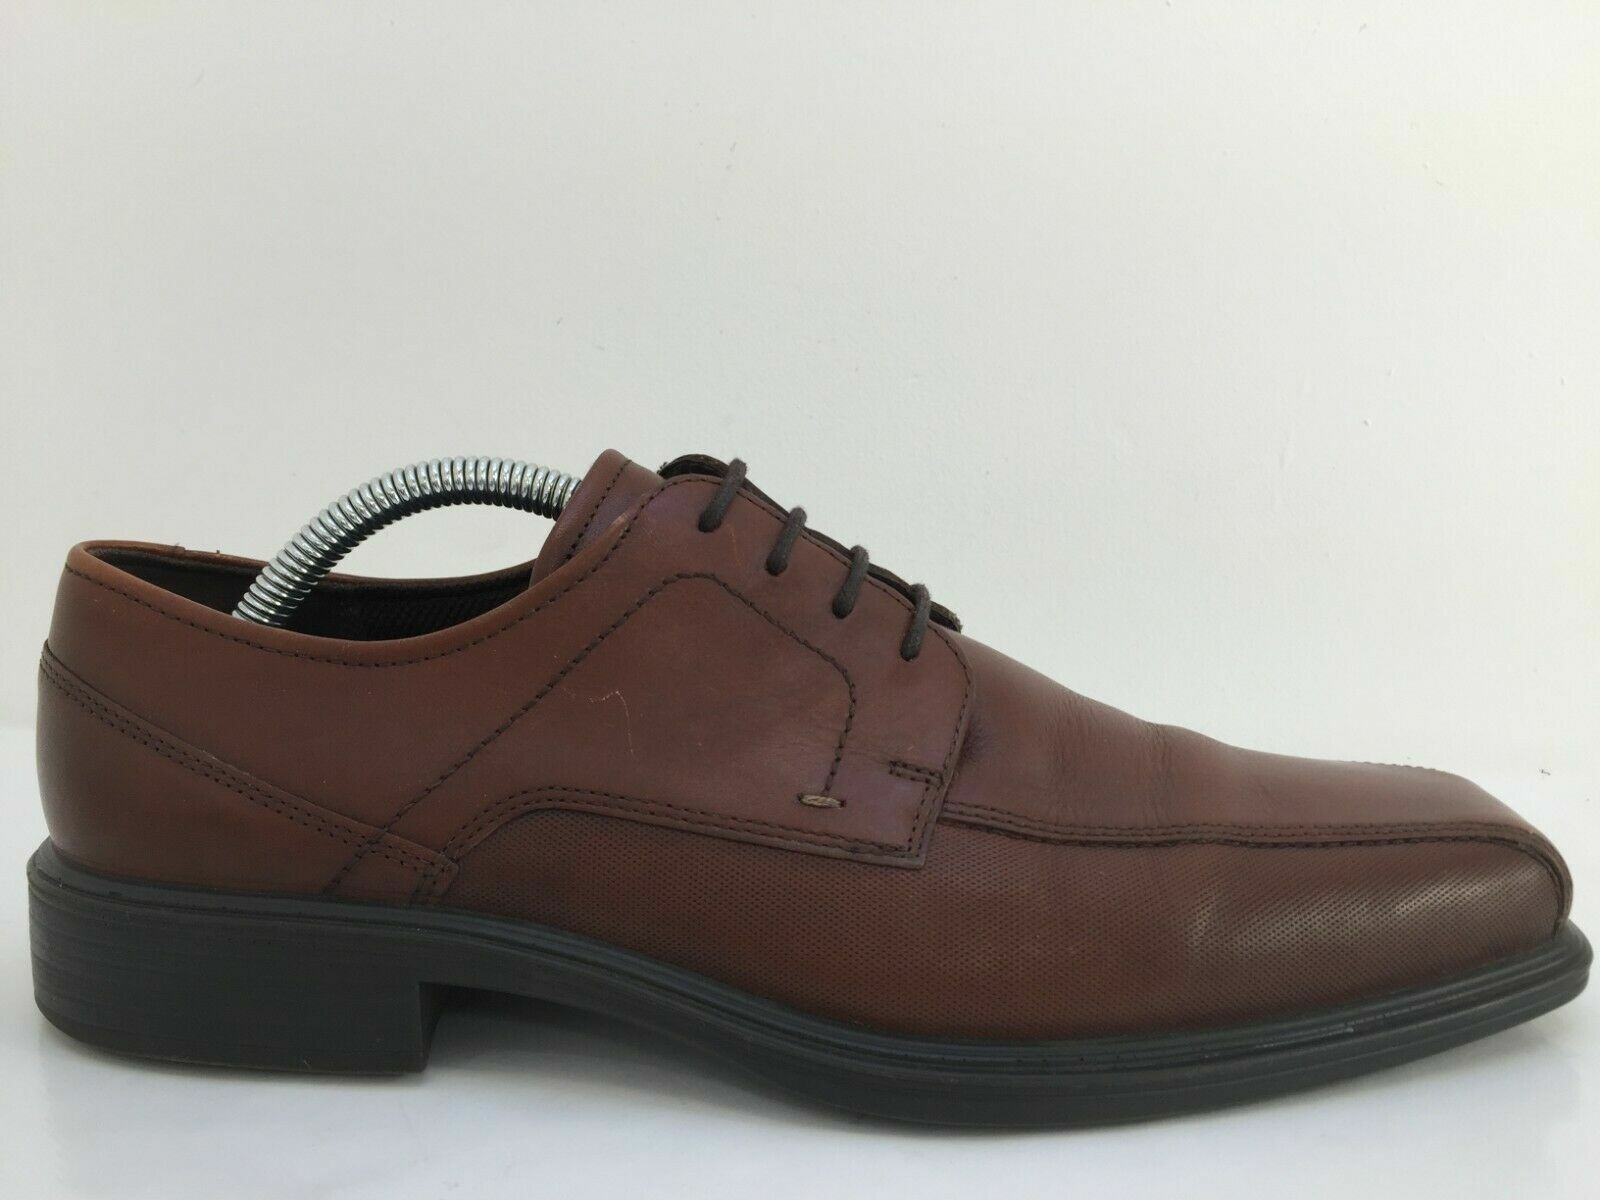 Ecco Brown Leather Lace Moccasin Lace Up Shoe Mens Size UK 7 Eur 41